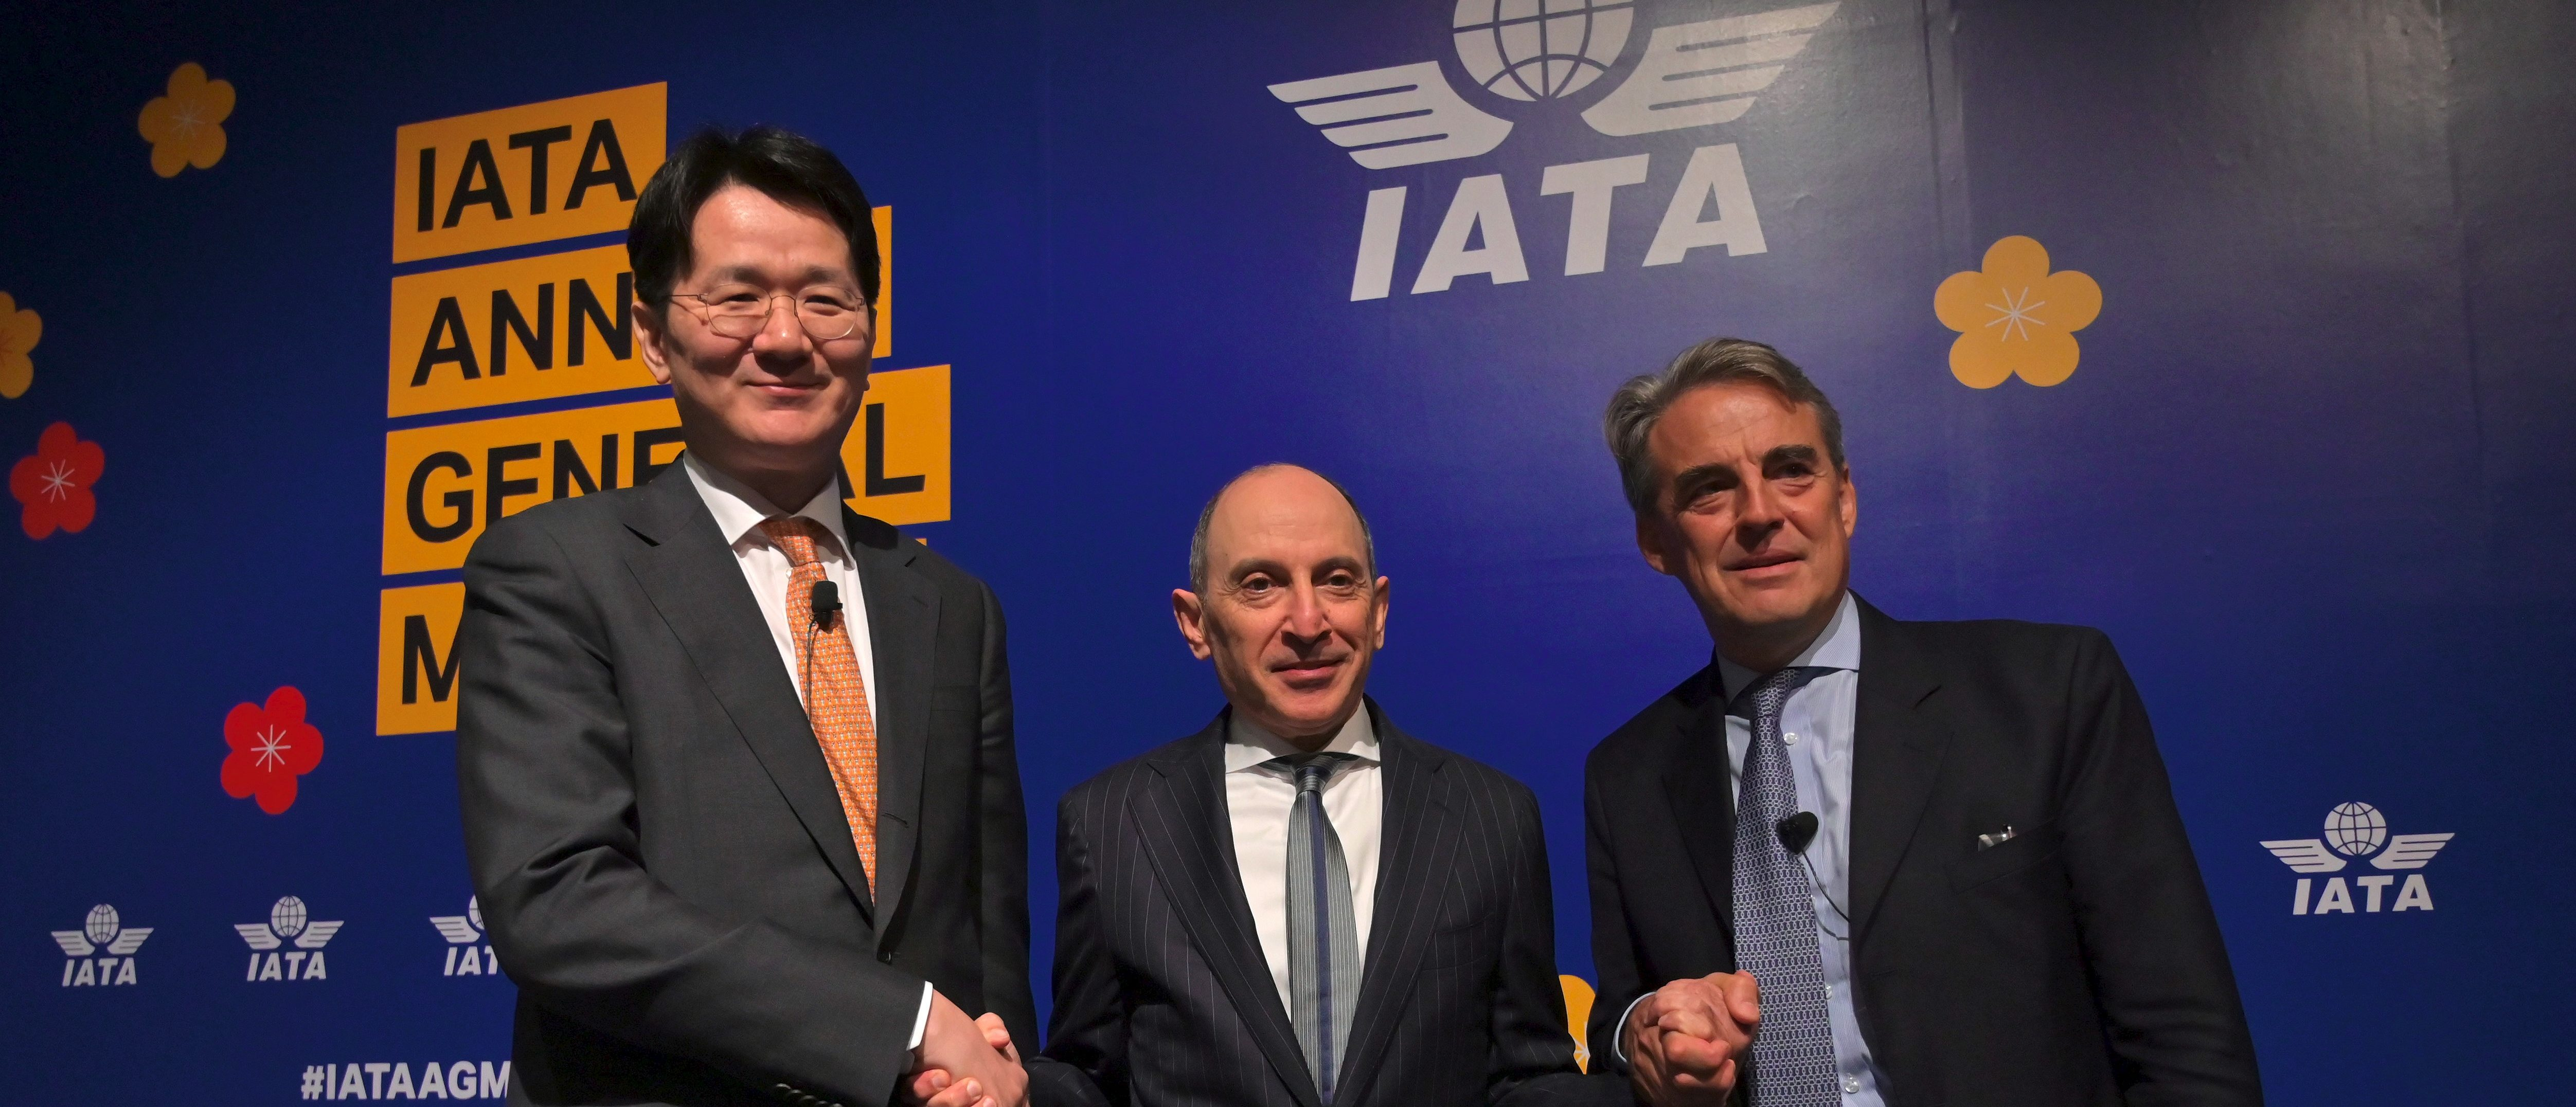 International Air Transport Association (IATA) chief executive Alexandre de Juniac (R) poses with Qatar Airways chief executive Akbar Al Baker (C) and Korean Air chief executive Walter Cho (L) during a press conference after the opening session of the annual general meeting of IATA in Seoul on June 2, 2019. - Intensifying trade wars and rising fuel prices will continue to bog down airline profits this year, the International Air Transport Association said on June 2. (Photo by Jung Yeon-je / AFP) (Photo credit should read JUNG YEON-JE/AFP via Getty Images)